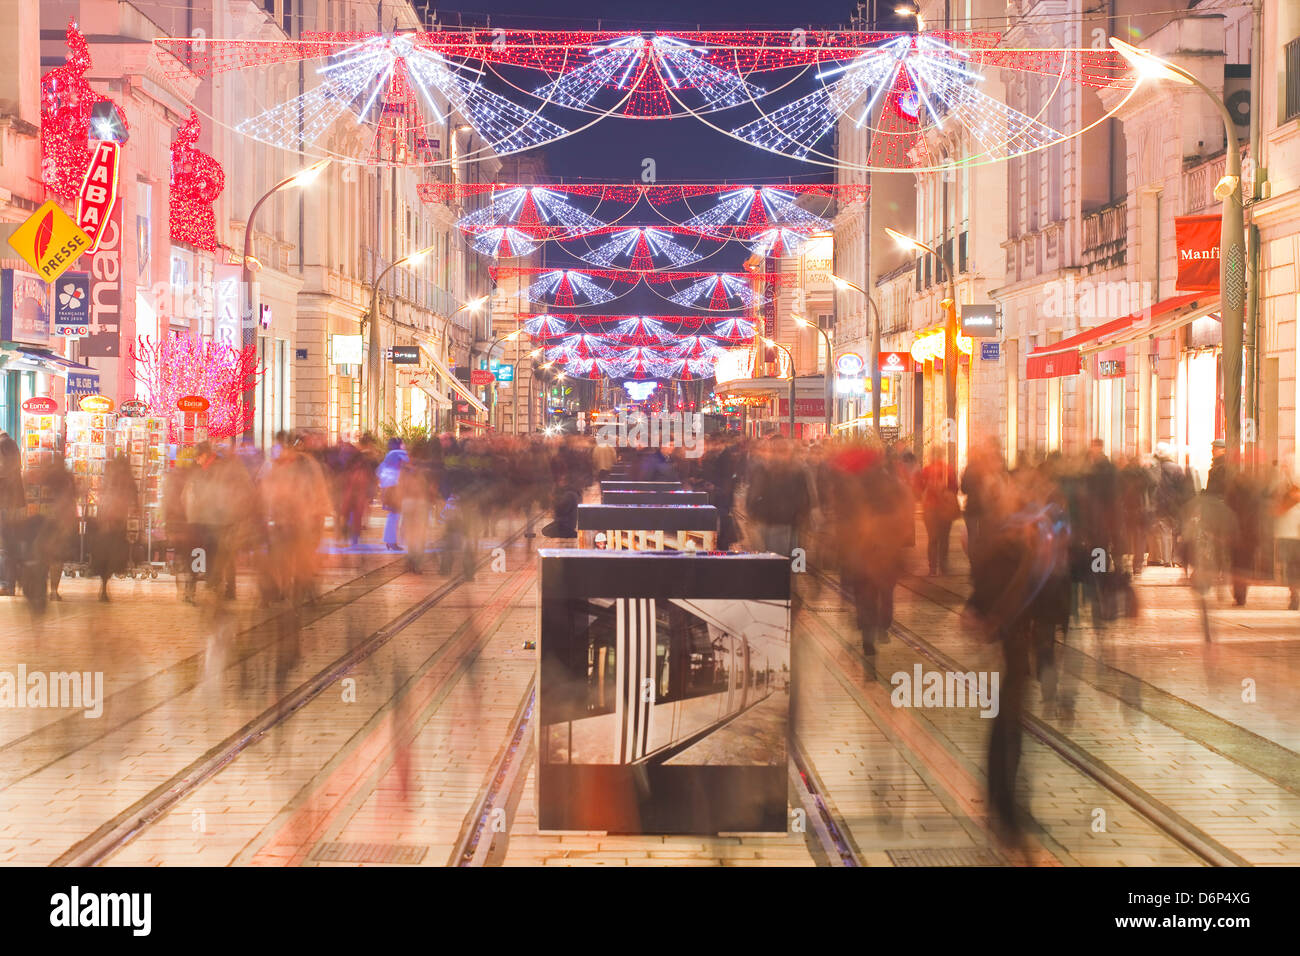 Rue Nationale in the city of Tours full of Christmas shoppers, Tours, Indre-et-Loire, France, Europe - Stock Image